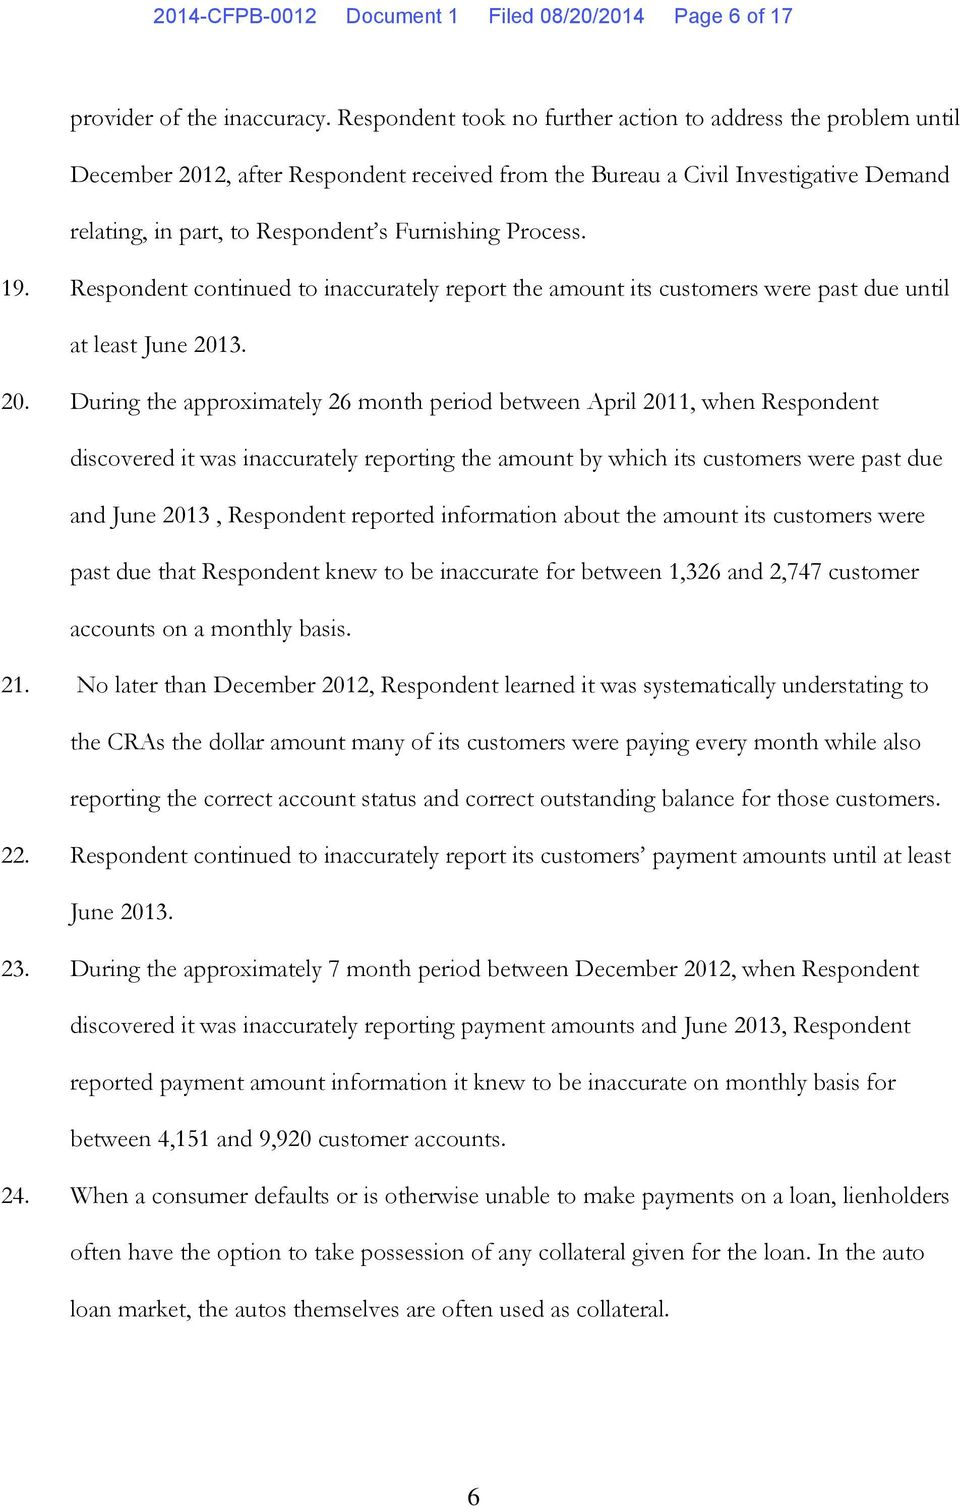 Process. 19. Respondent continued to inaccurately report the amount its customers were past due until at least June 201